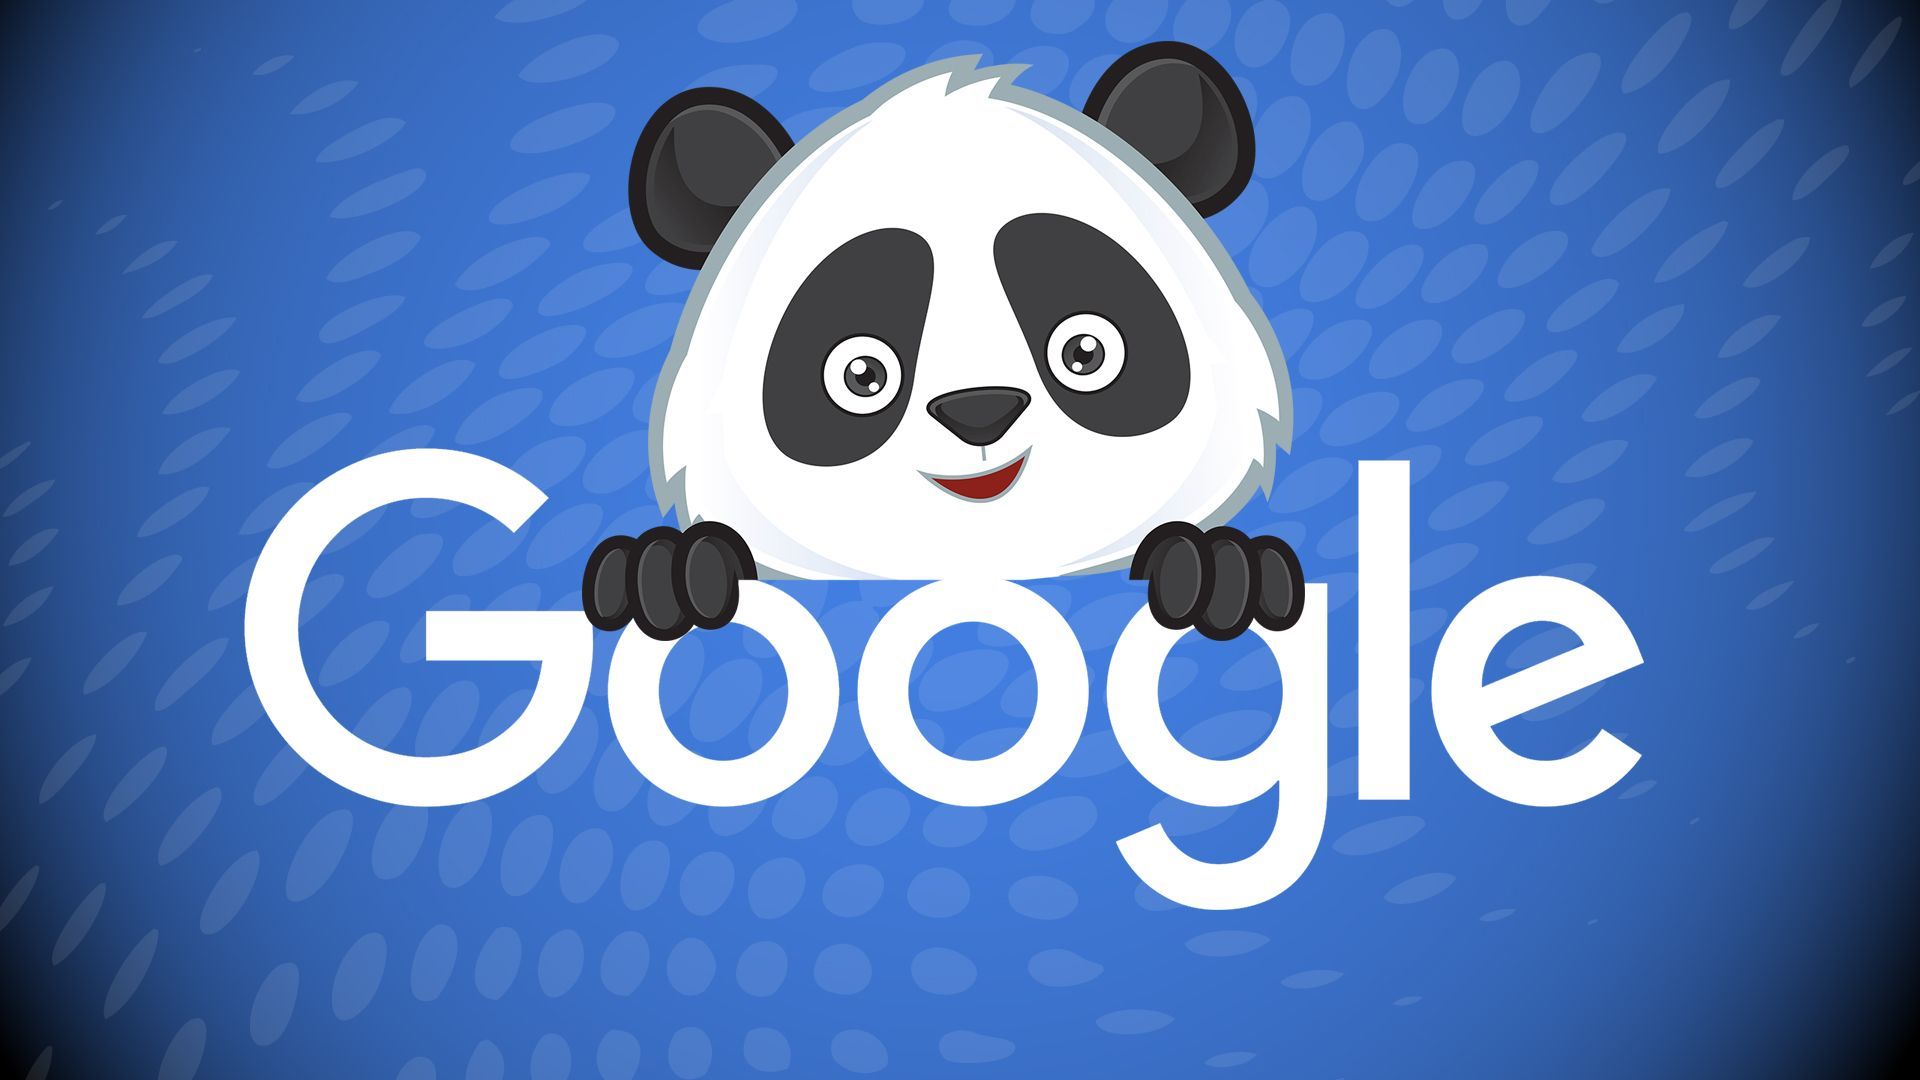 Google Panda Is Now Part Of Google S Core Ranking Signals Panda